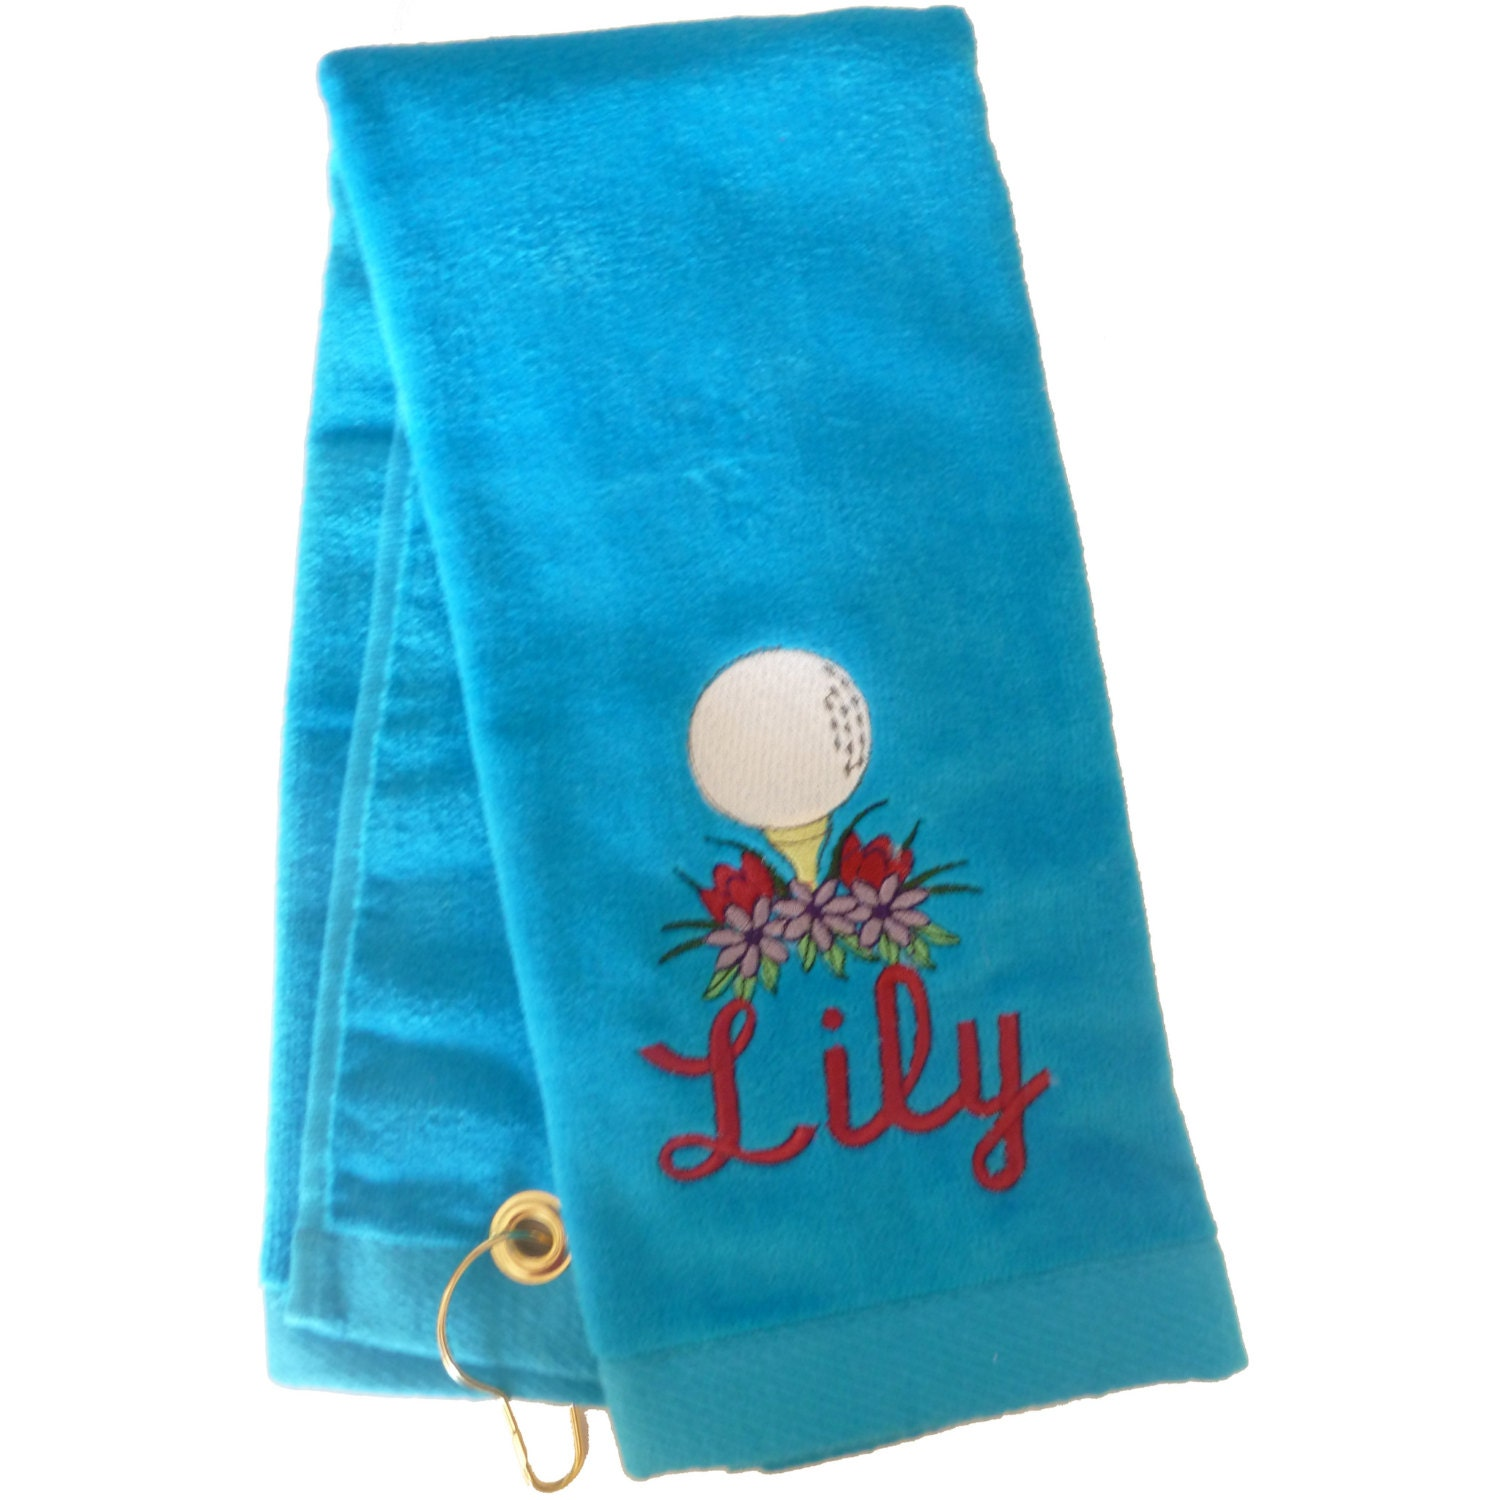 Custom Embroidered And Personalized Golf Towel For Her